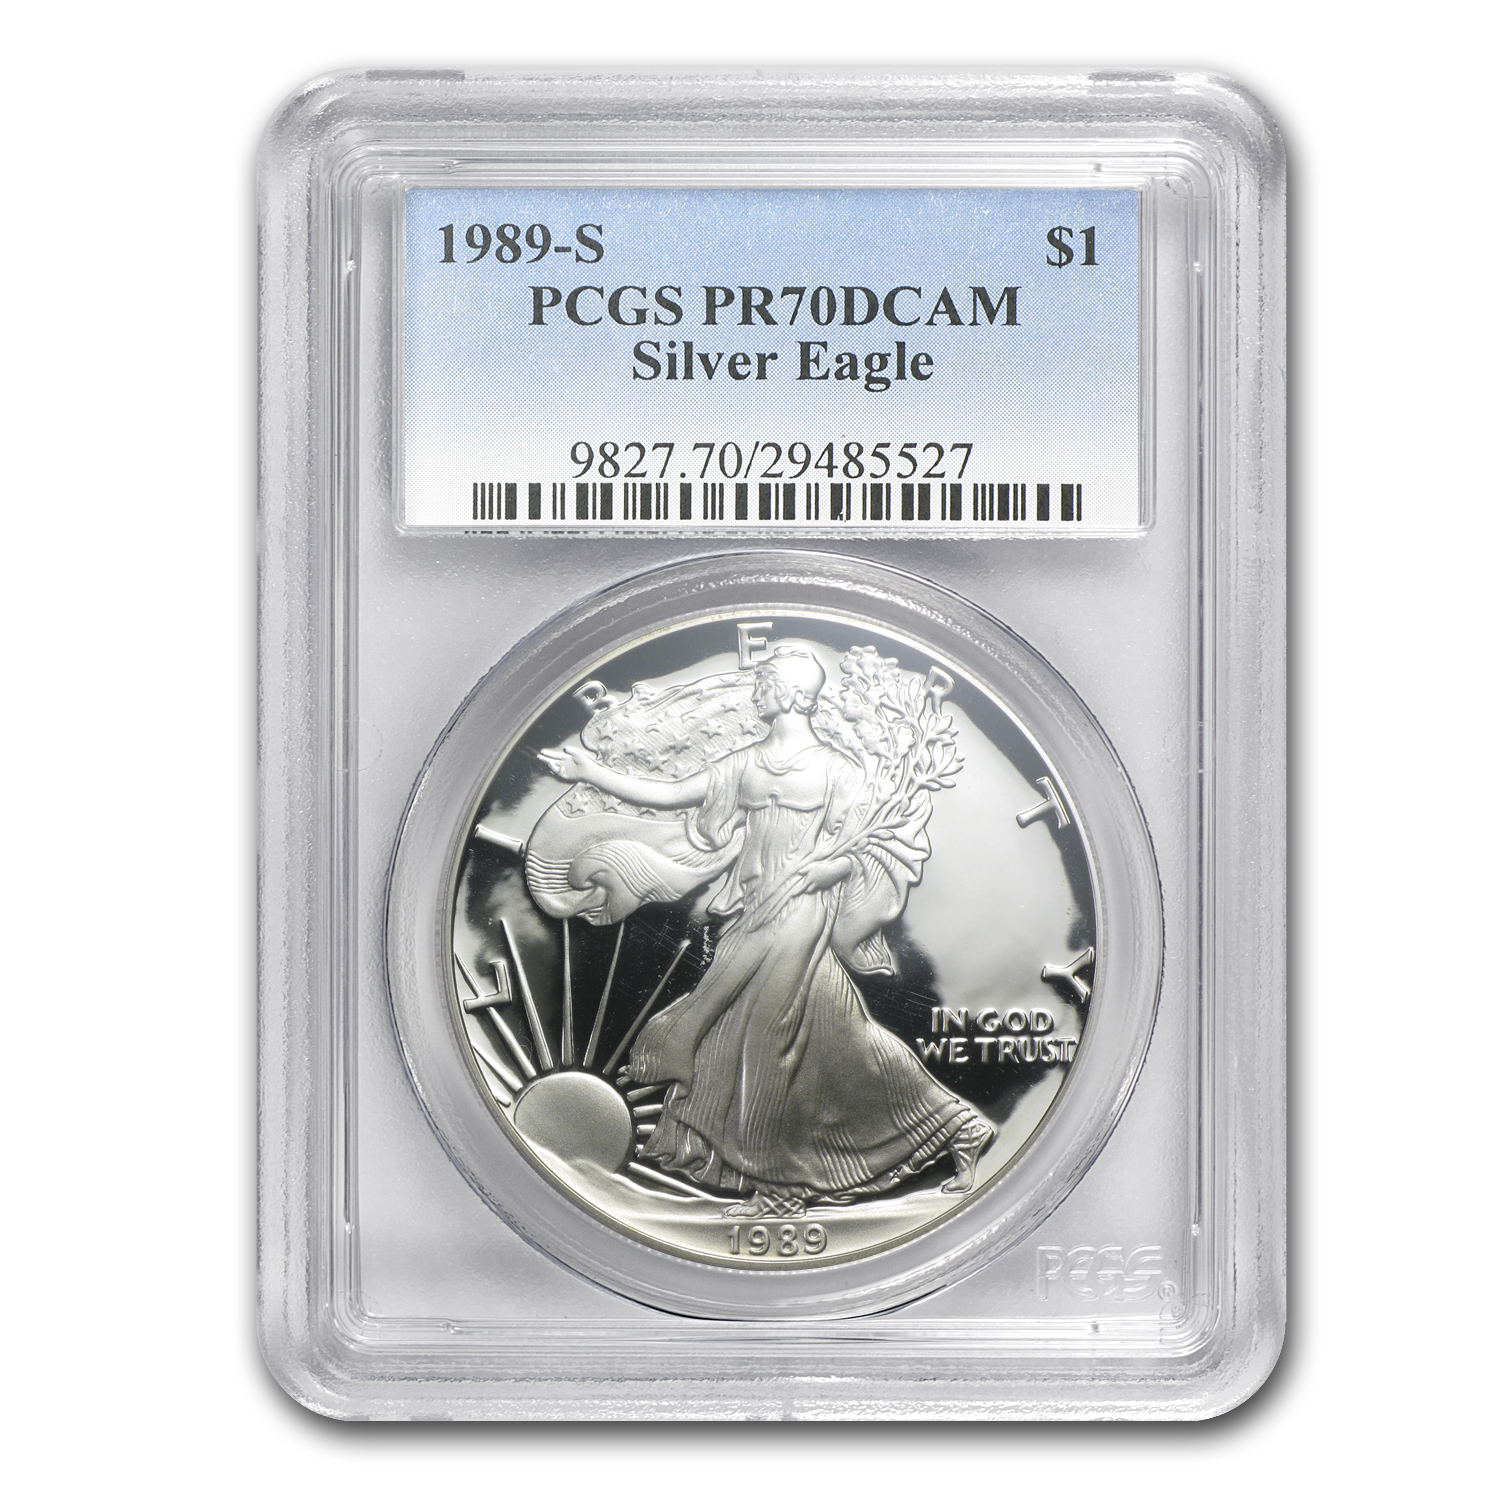 1989-S (Proof) Silver American Eagle PR-70 PCGS Registry Set